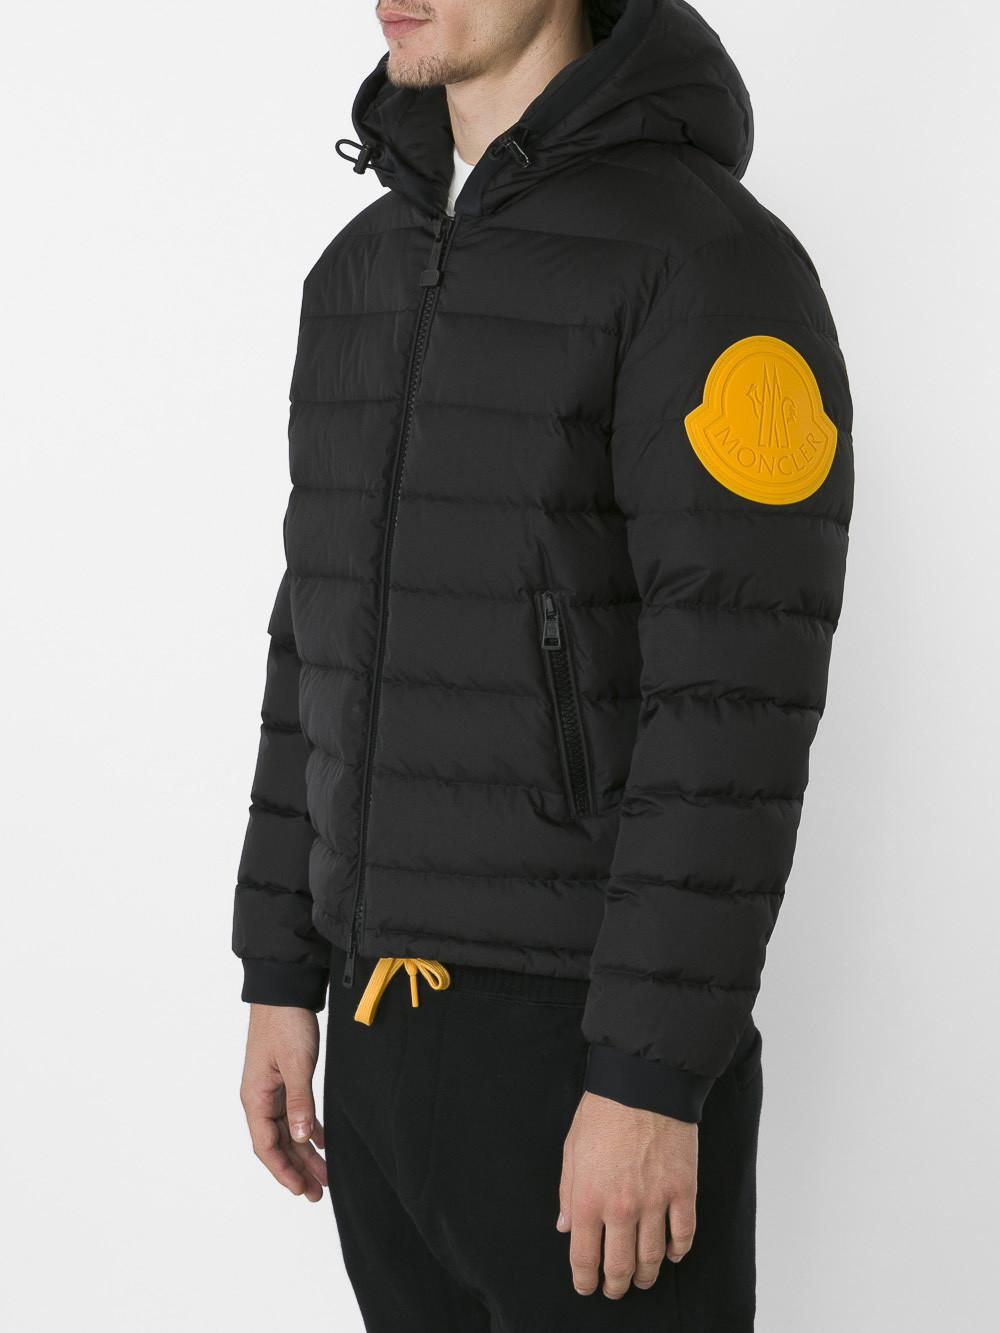 off white x moncler jacket